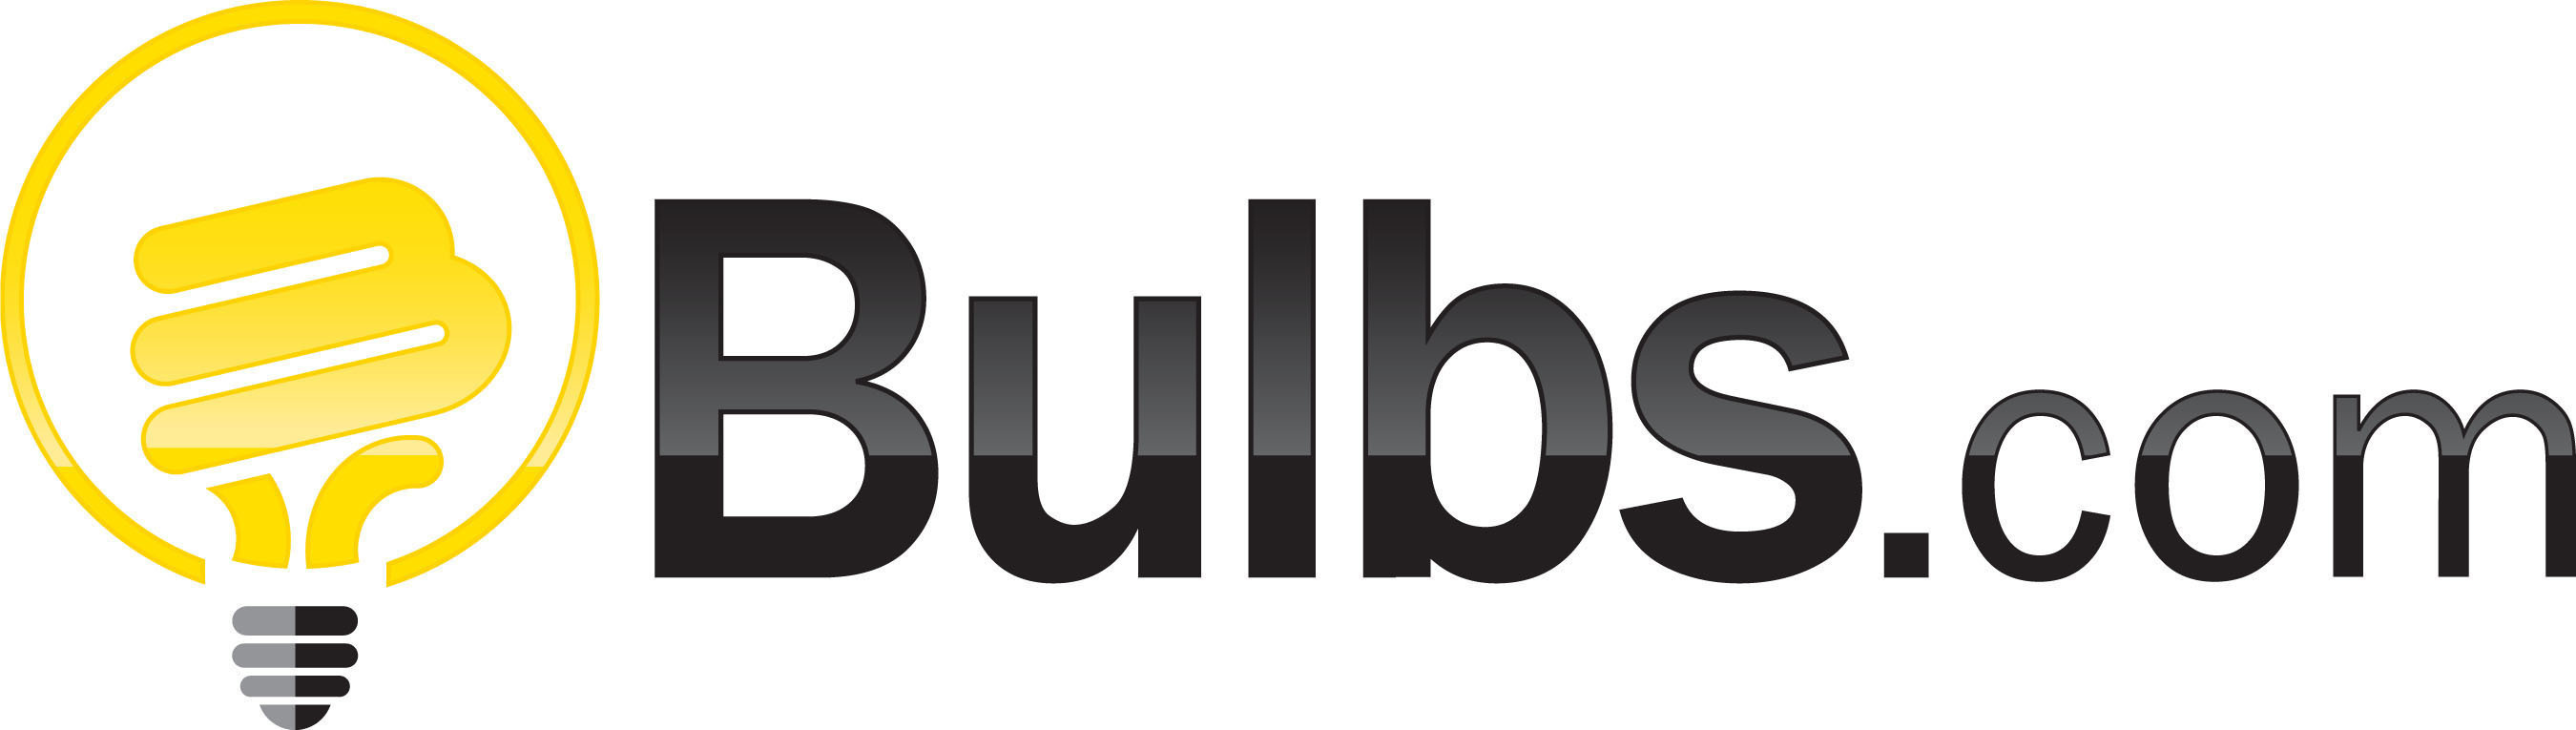 Bulbs.com logo